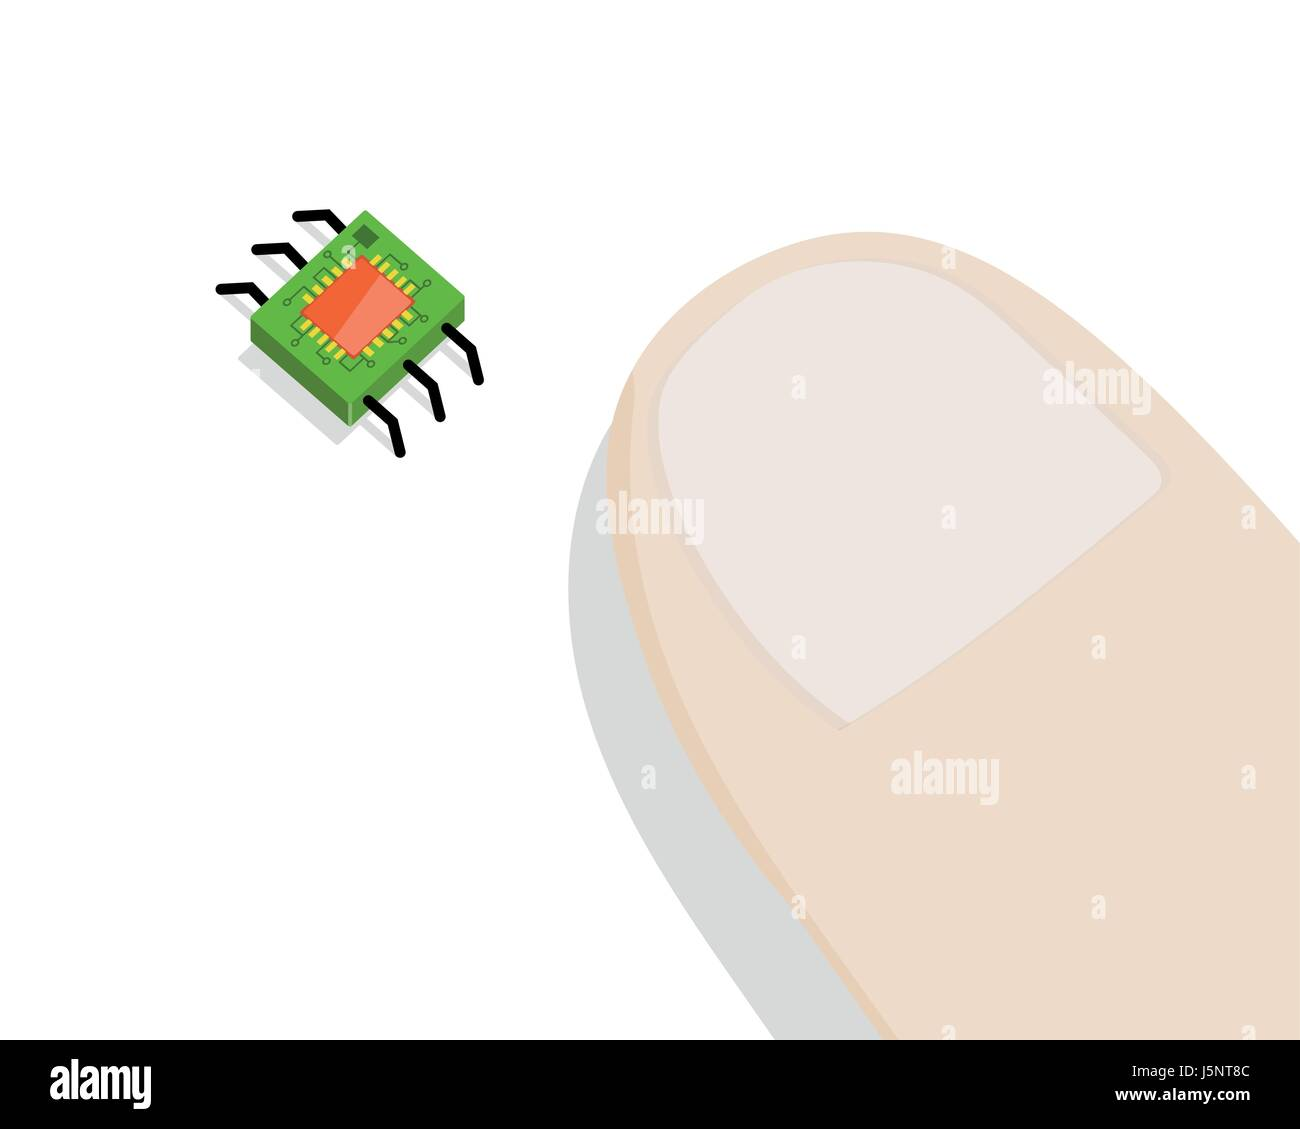 Minirobot Near Human Finger on white background. - Stock Vector